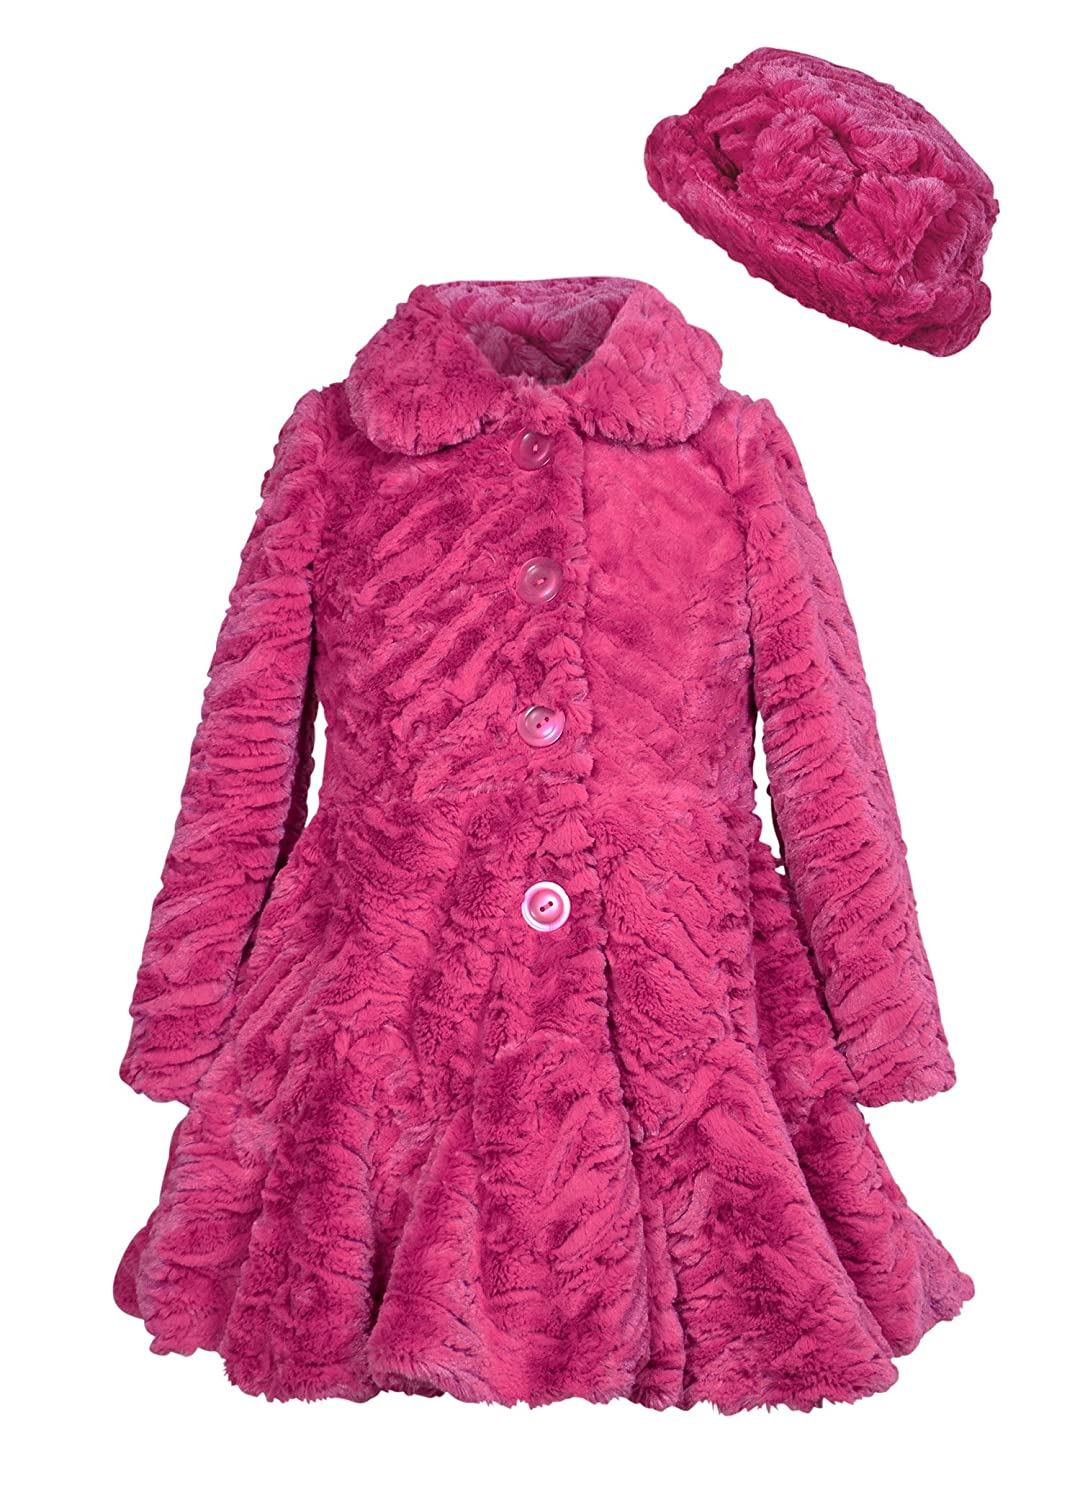 Widgeon Girls' Faux Fur Flounce Skirt Bottom Coat and Hat 3506